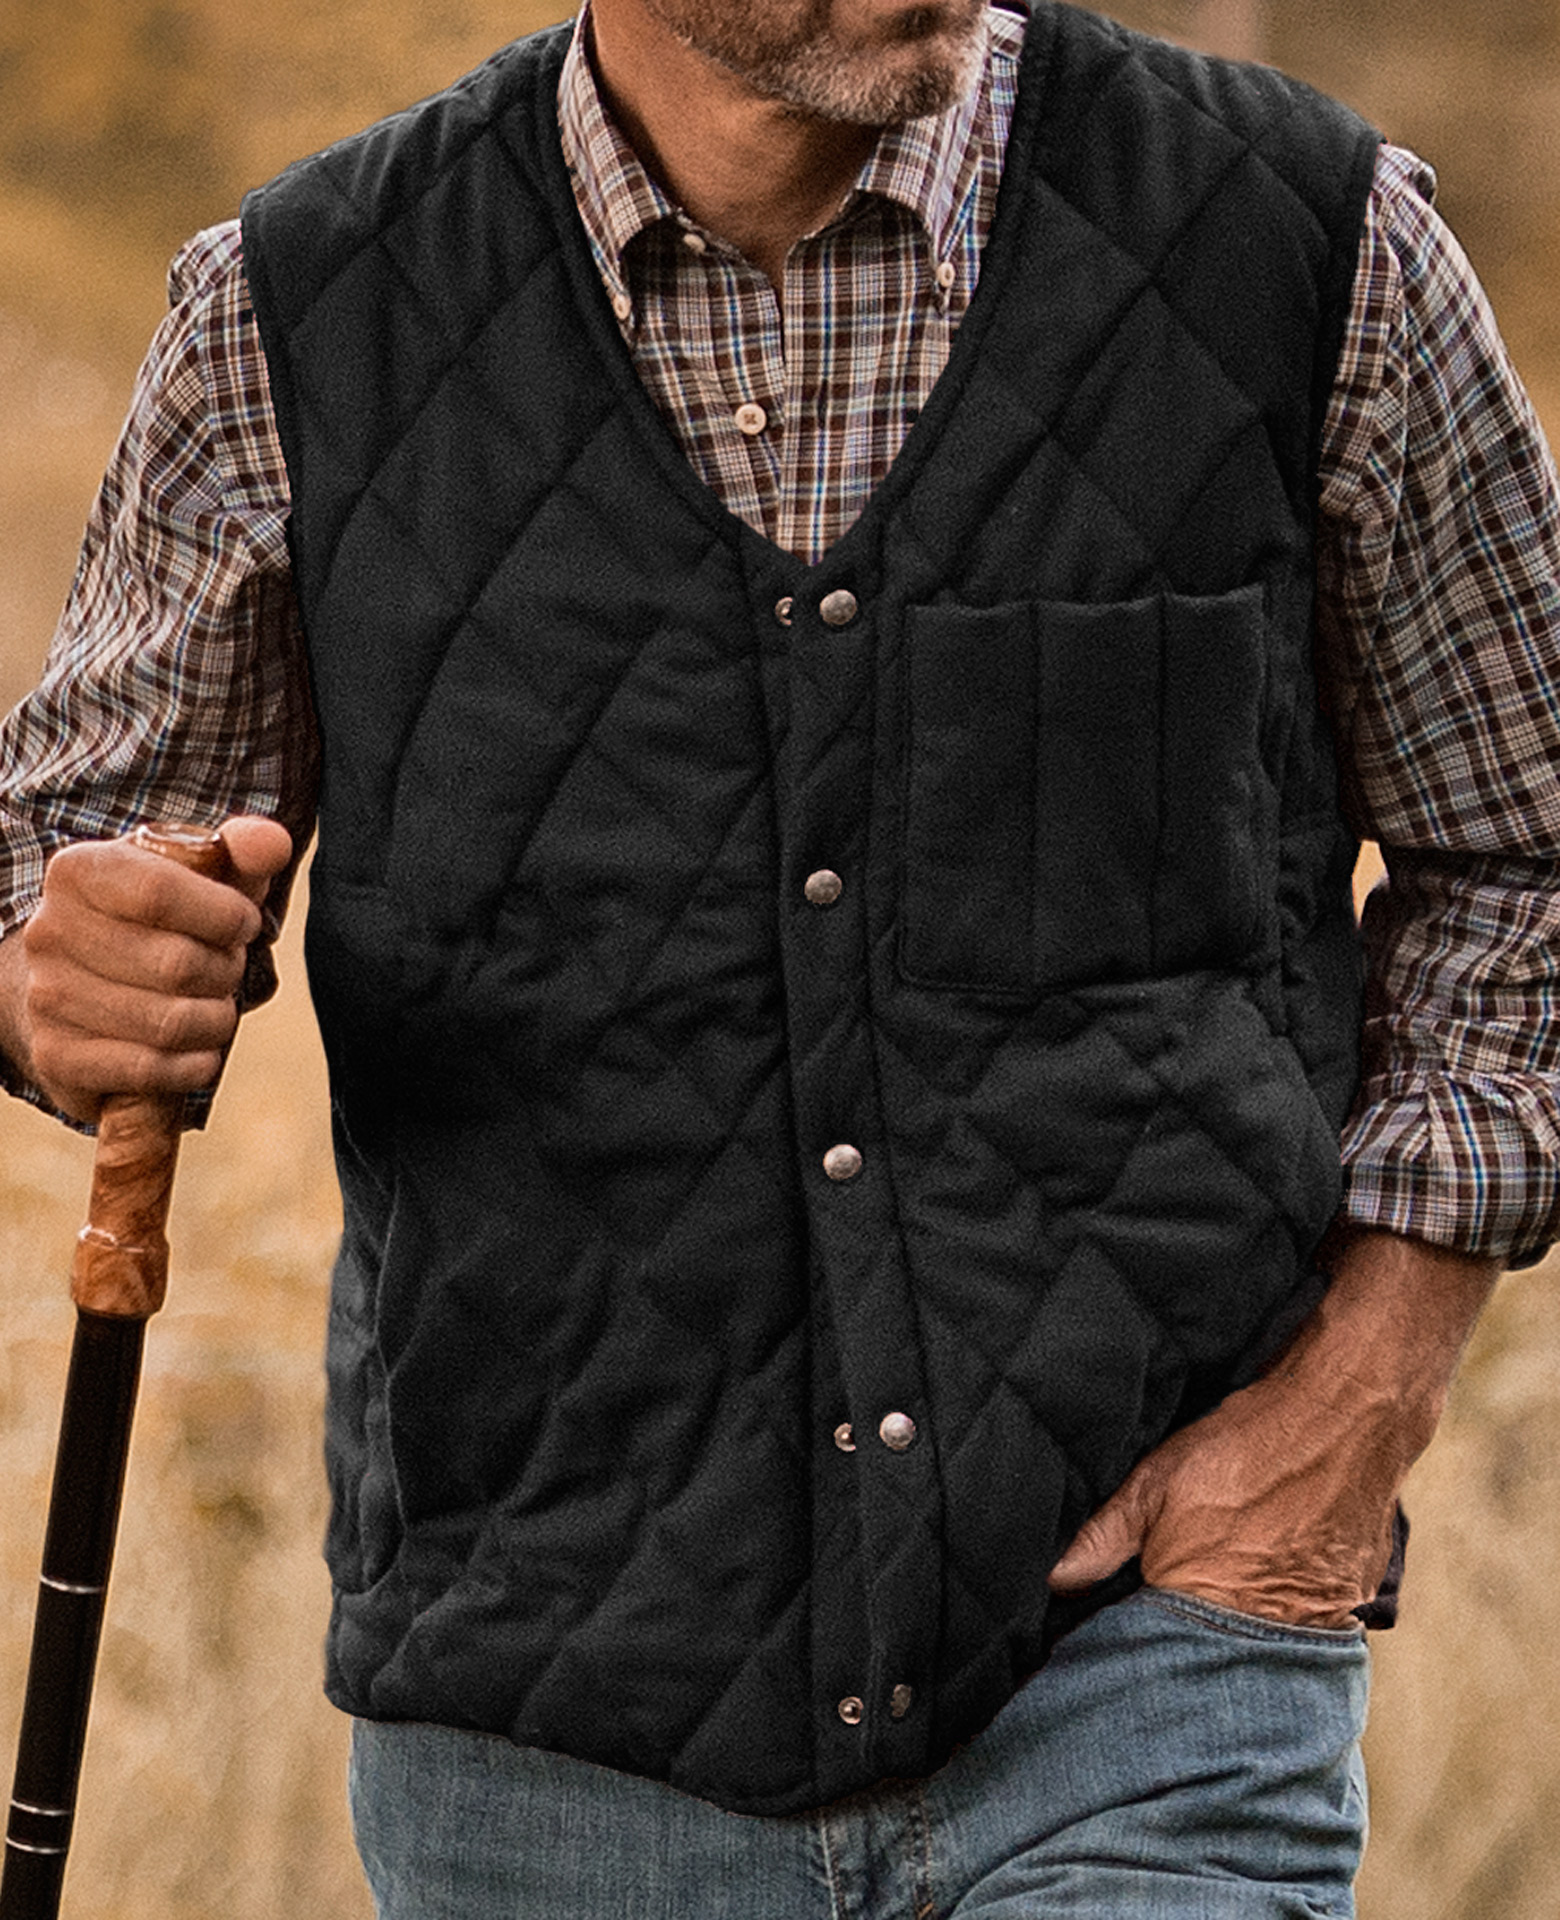 OFF59%| barbour online shop | barbour outlet uk quilted vest mens : barbour mens quilted vest - Adamdwight.com